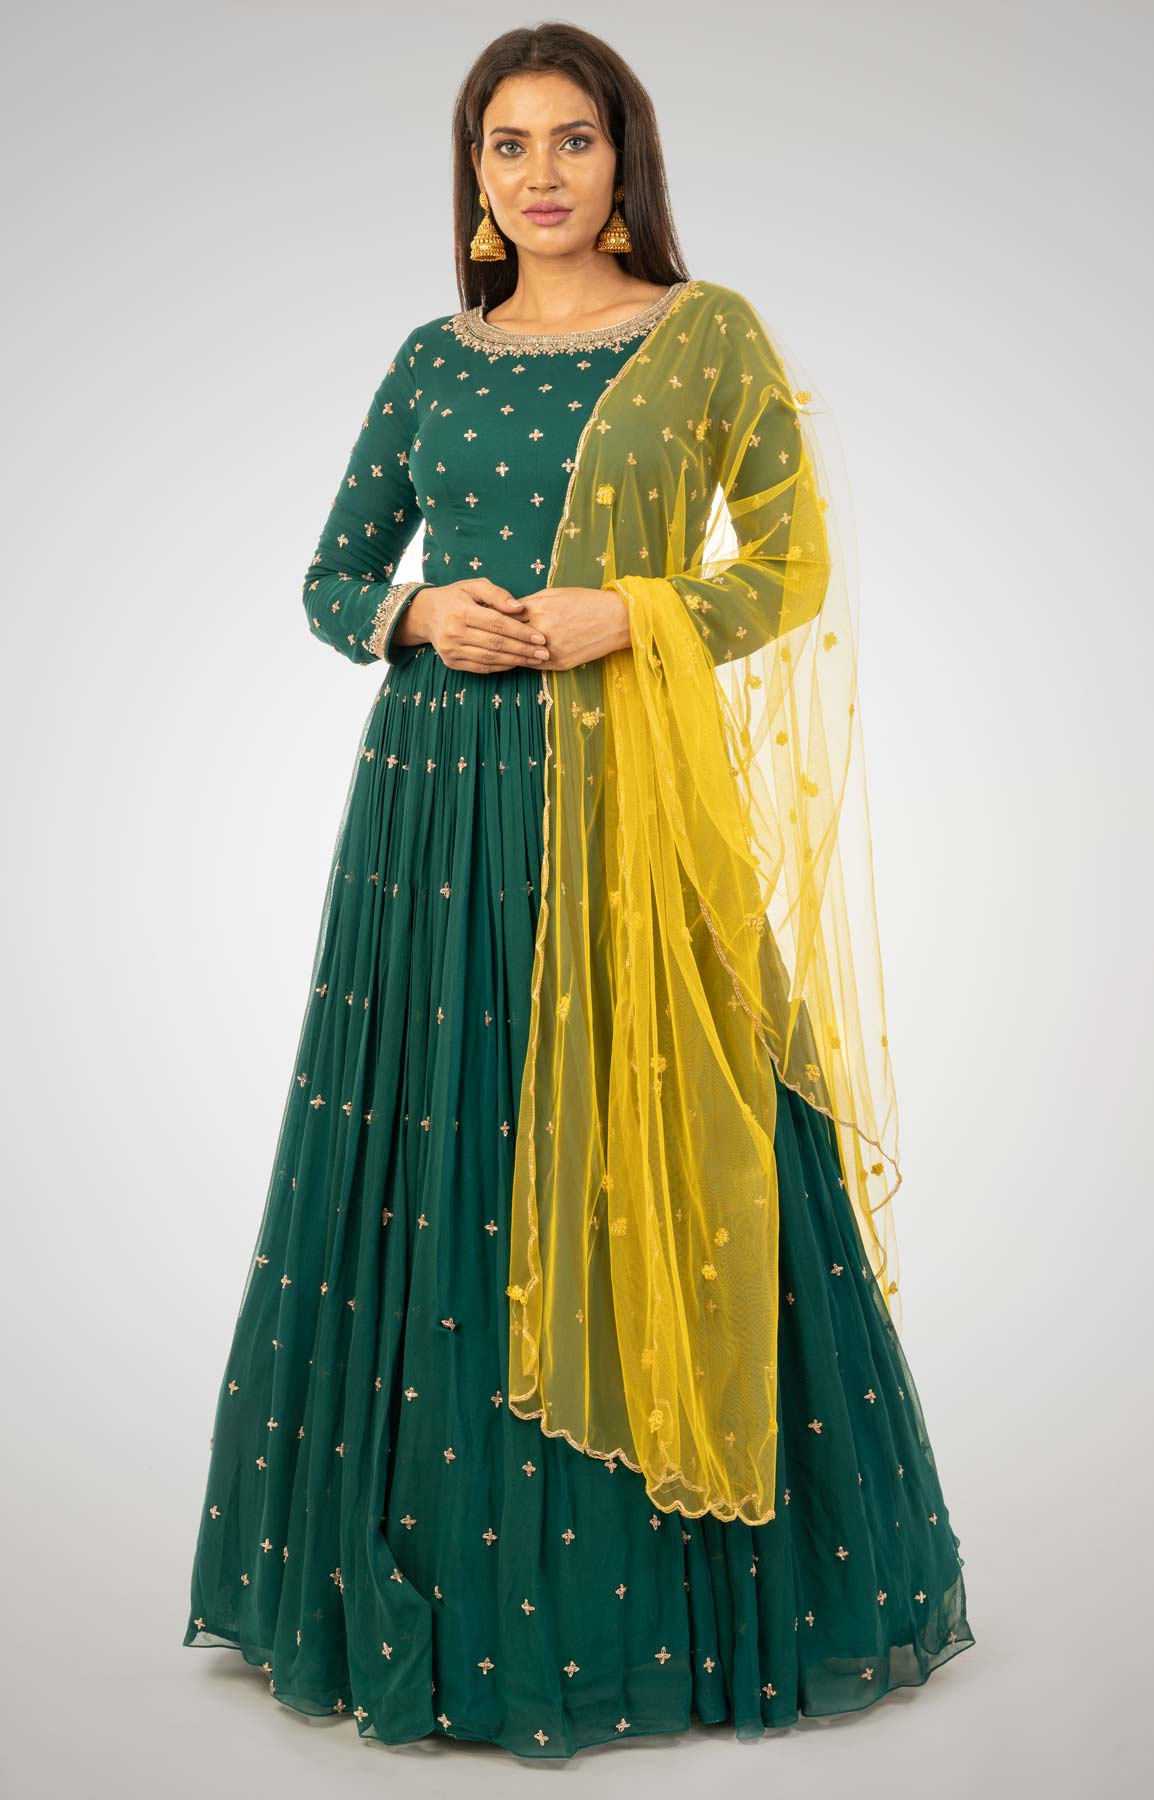 Bottle Green Anarkali Suit With Butti Work Paired with Contrasting Yellow Dupatta – Viraaya By Ushnakmals